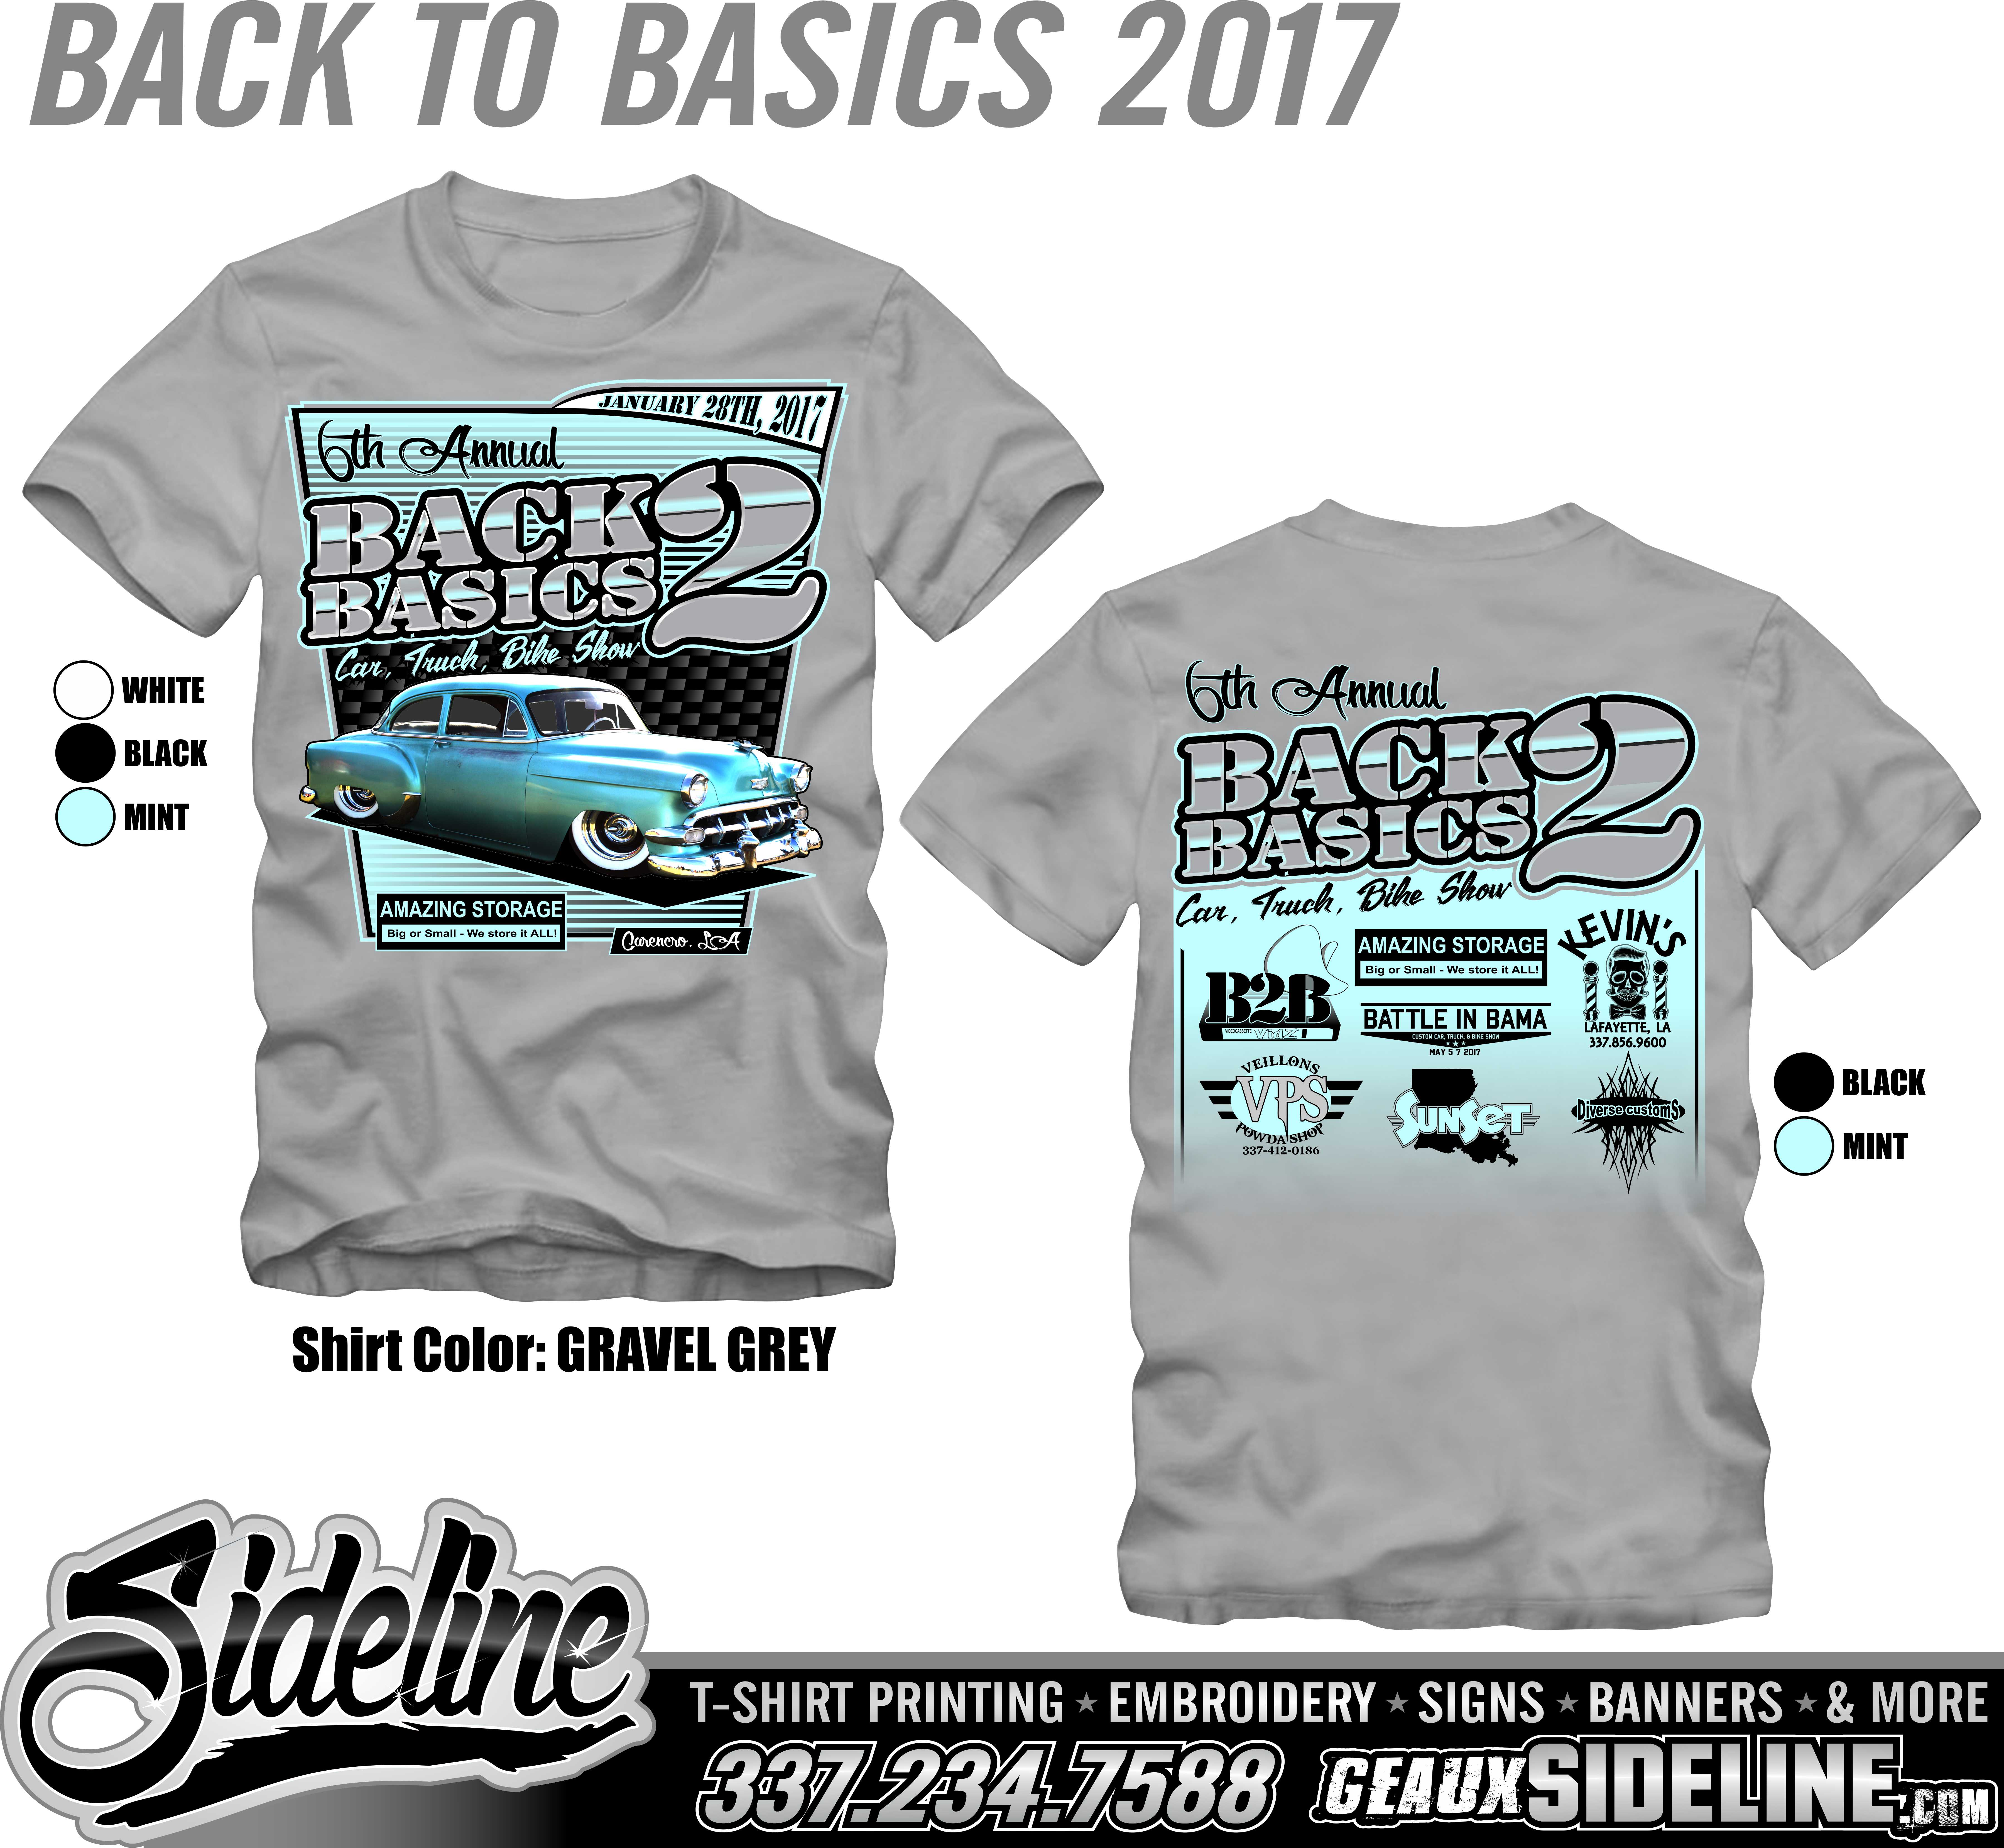 BACK TO BASICS 2017